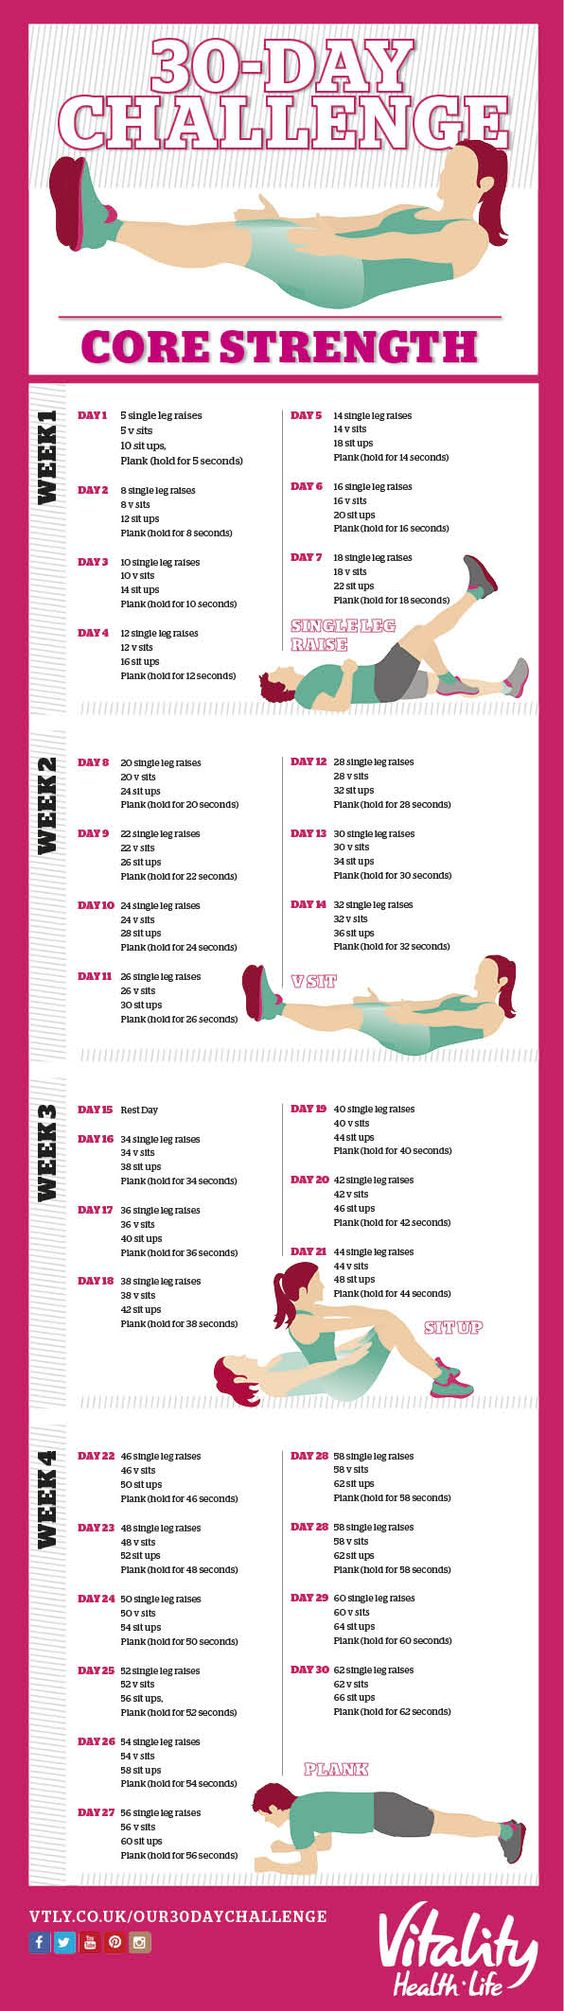 30-DAY CHALLENGE: CORE STRENGTH